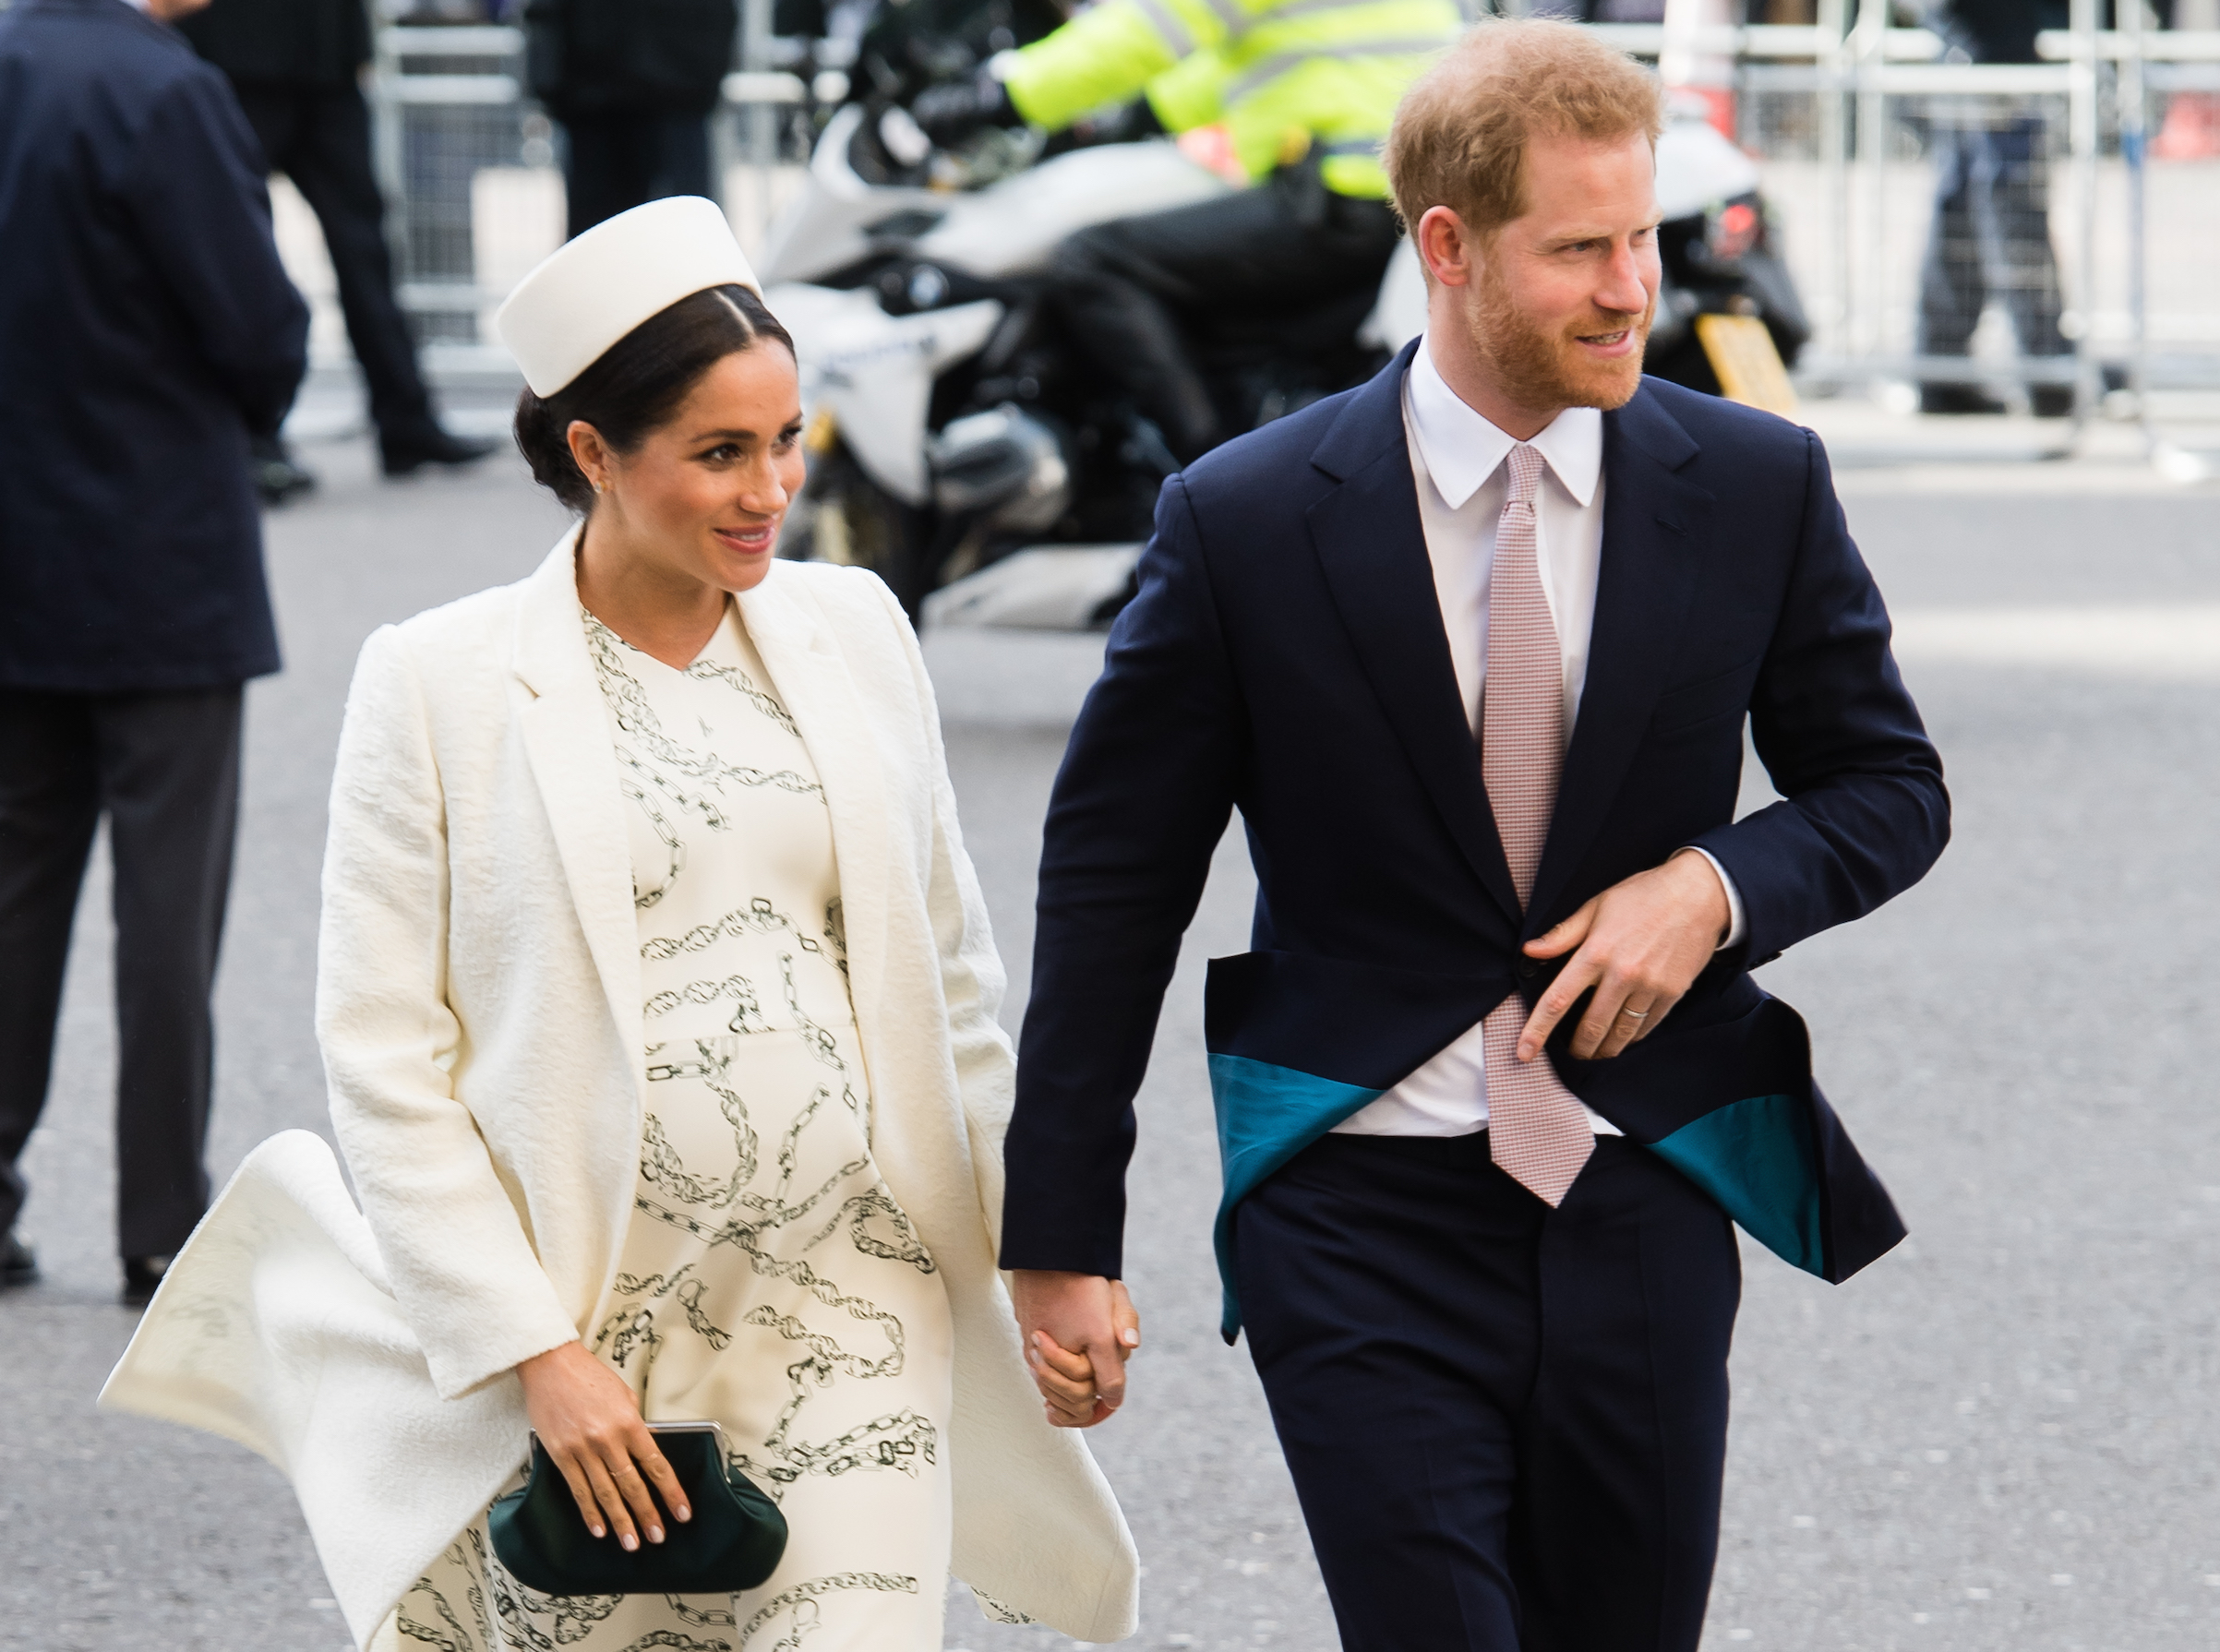 Prince Harry, Duke of Sussex and Meghan, Duchess of Sussex attend the Commonwealth Day service at Westminster Abbey on March 11, 2019 in London.